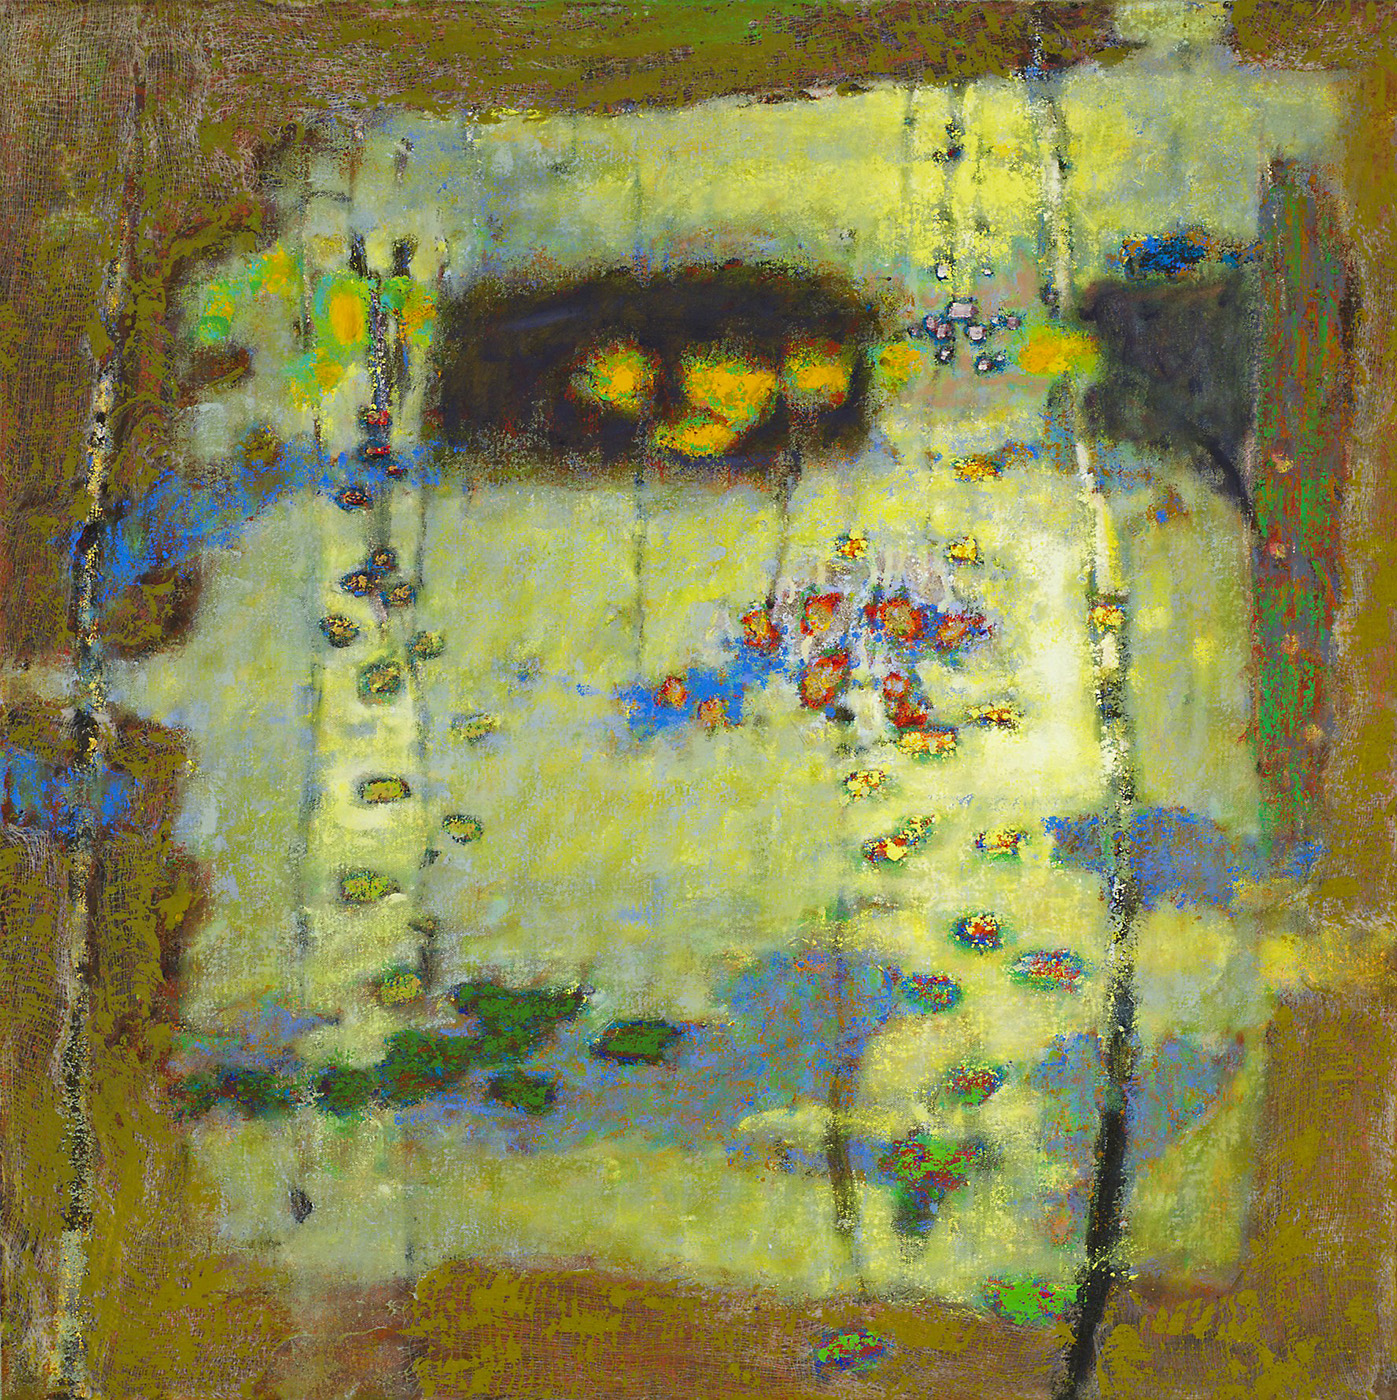 Conception Vessel   | oil on canvas | 32 x 32"